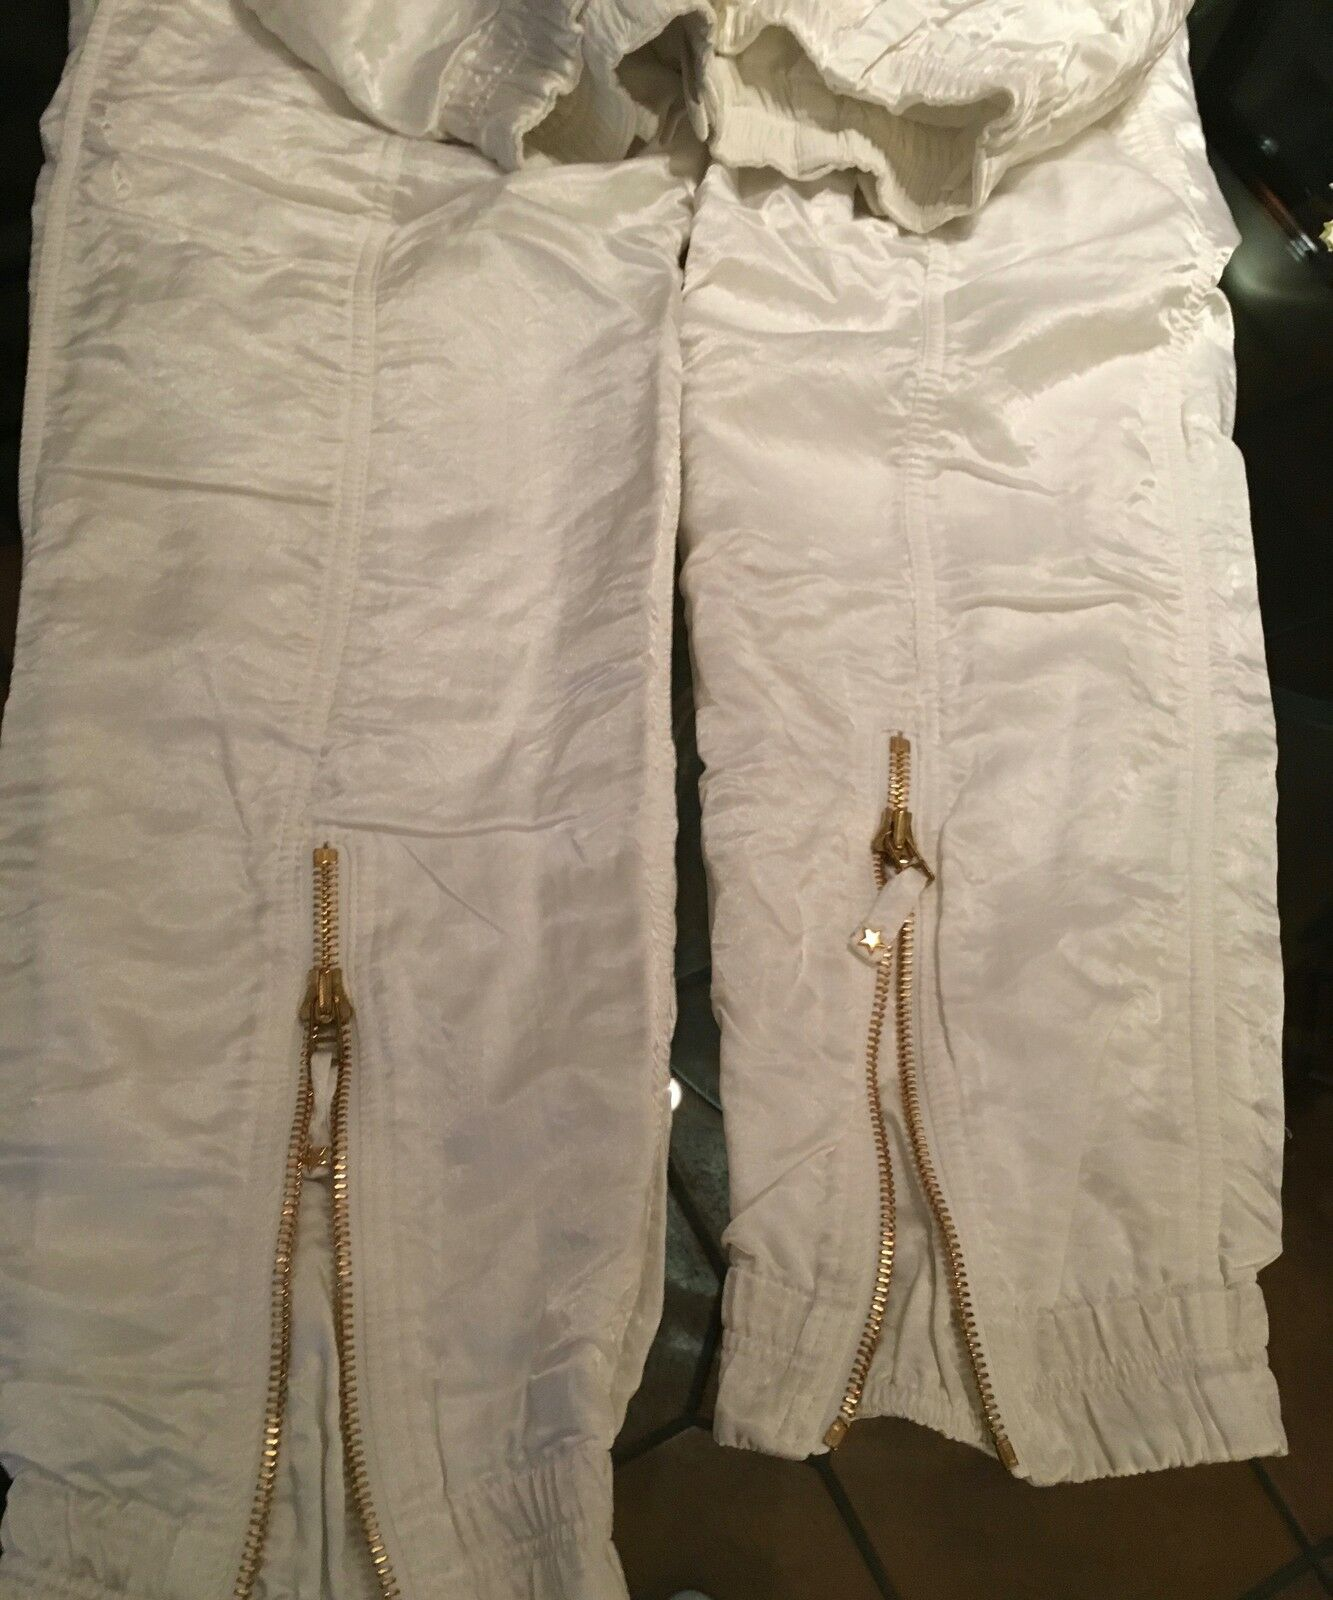 SKIHOSE SKIHOSE SKIHOSE DES LUXUSLABELS LILY FAROUCHE  WEISS   38 40  WINTER HOSE a409ad